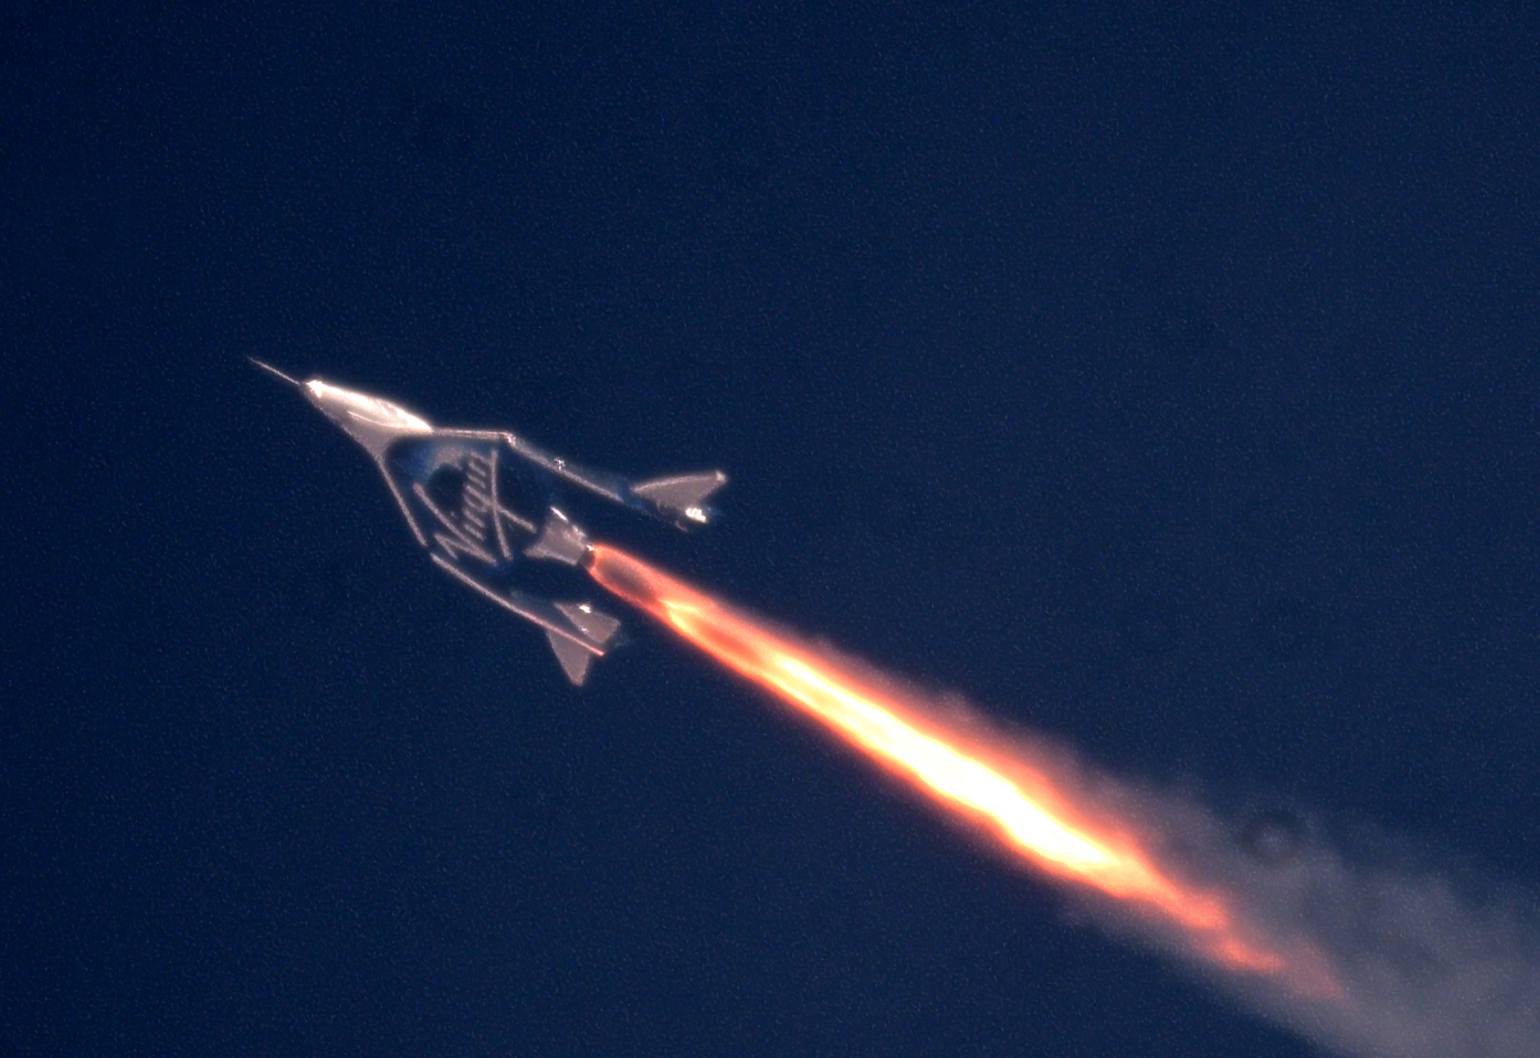 Australia is readying itself to be a global hub for space tourism - Create